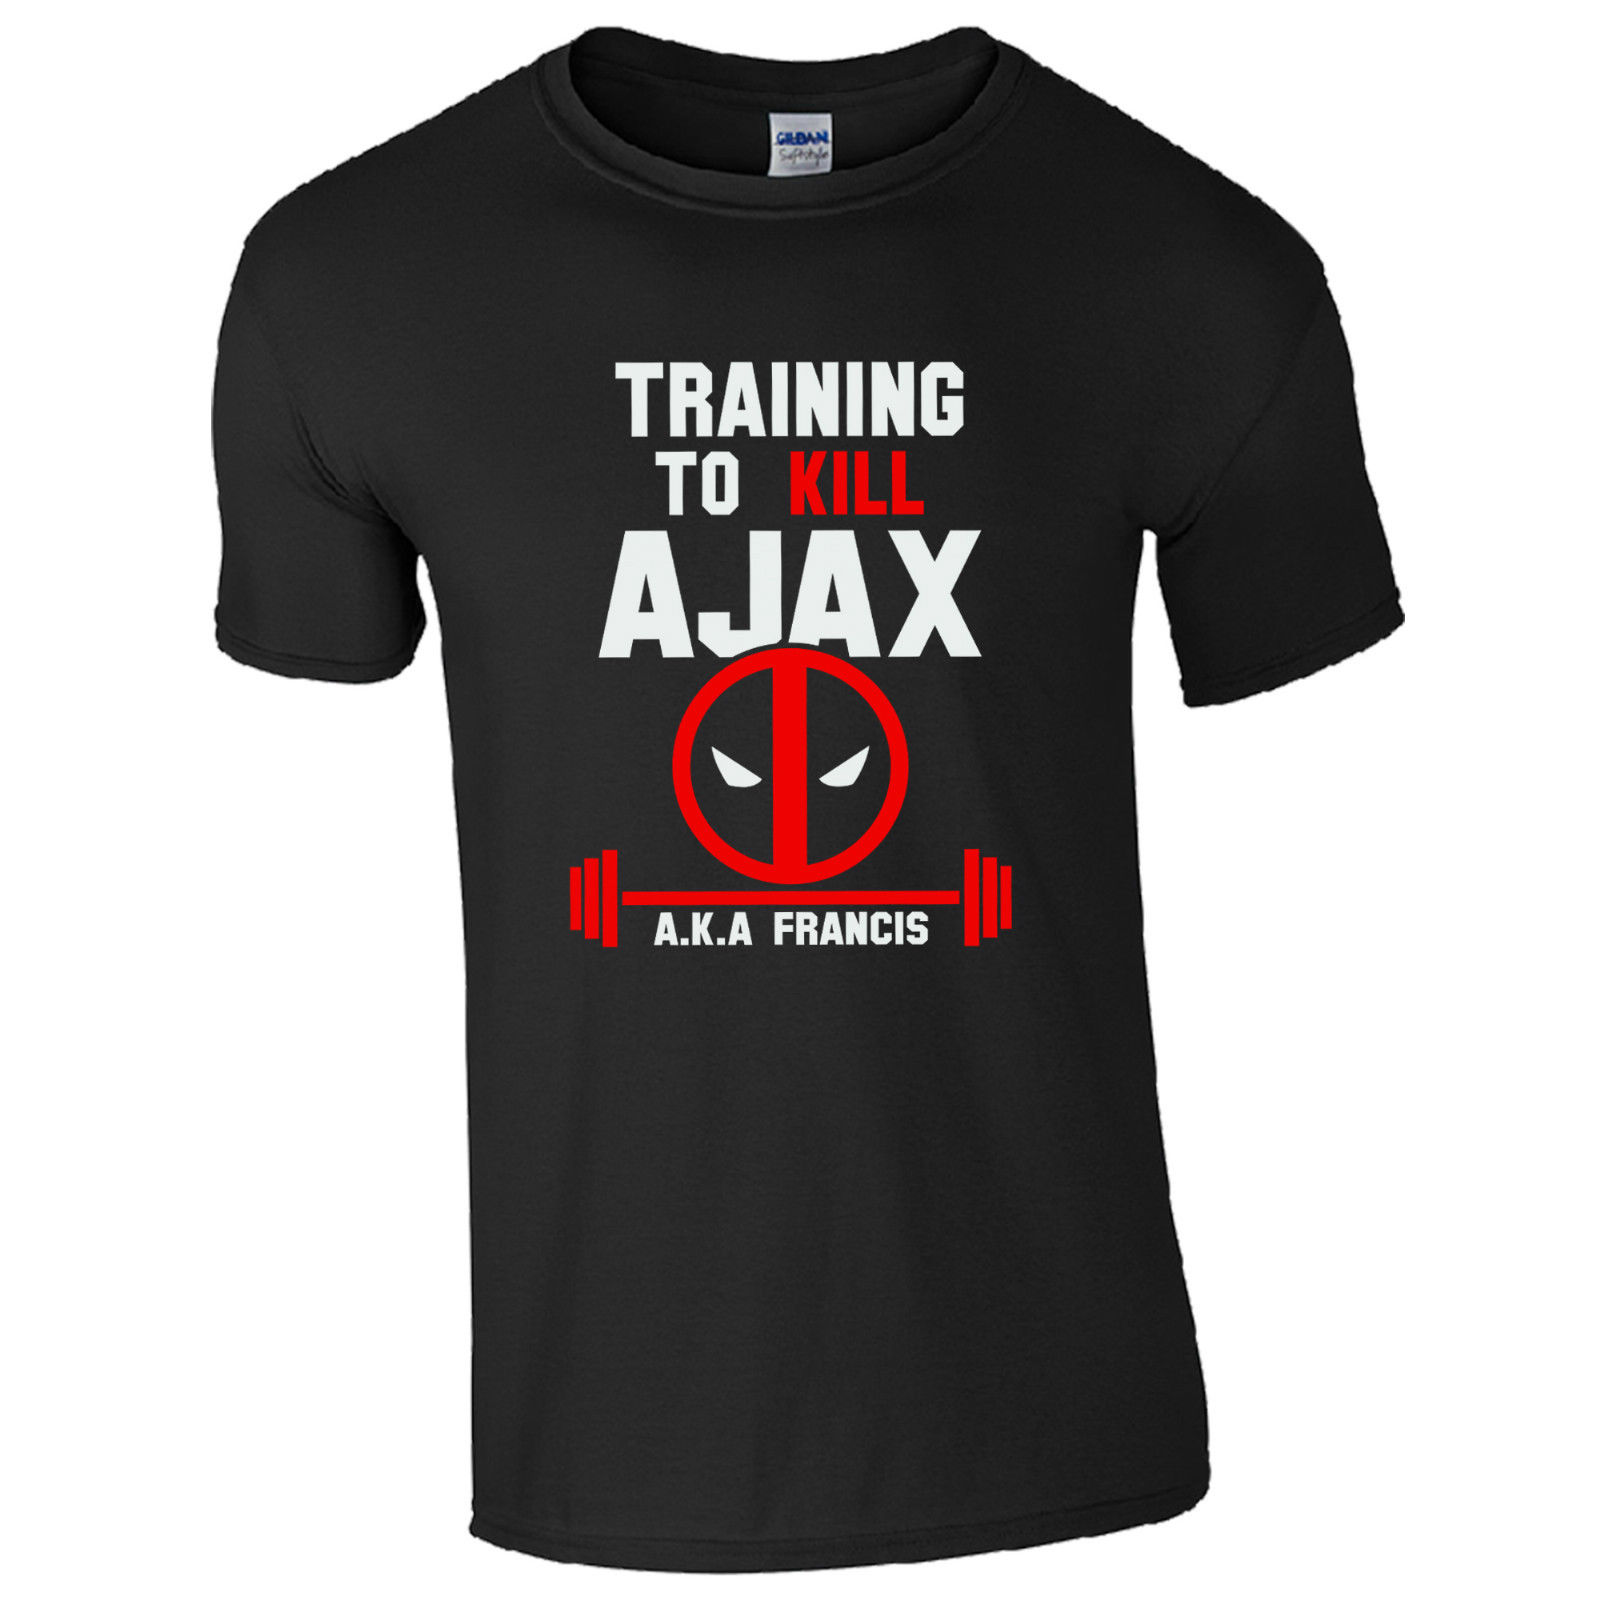 Traininger To Kill Ajax AKA Francis T-Shirt - Deadpool Goku Fan Gift Mens Top New Men'S Fashion Short-Sleeve T Shirt Mens